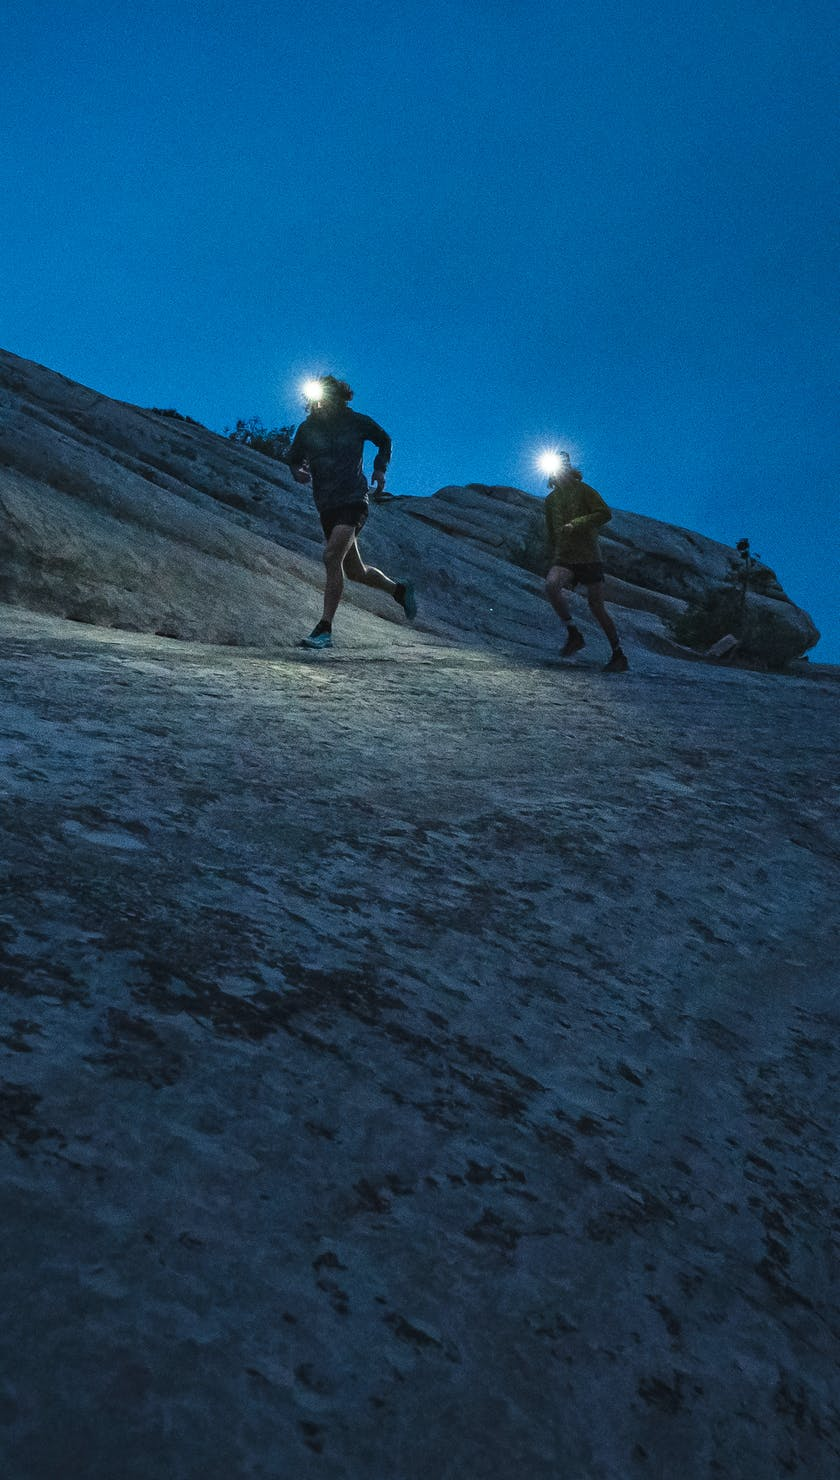 BD Athletes Joe Grant and Kyle Richardson running in the desert at night